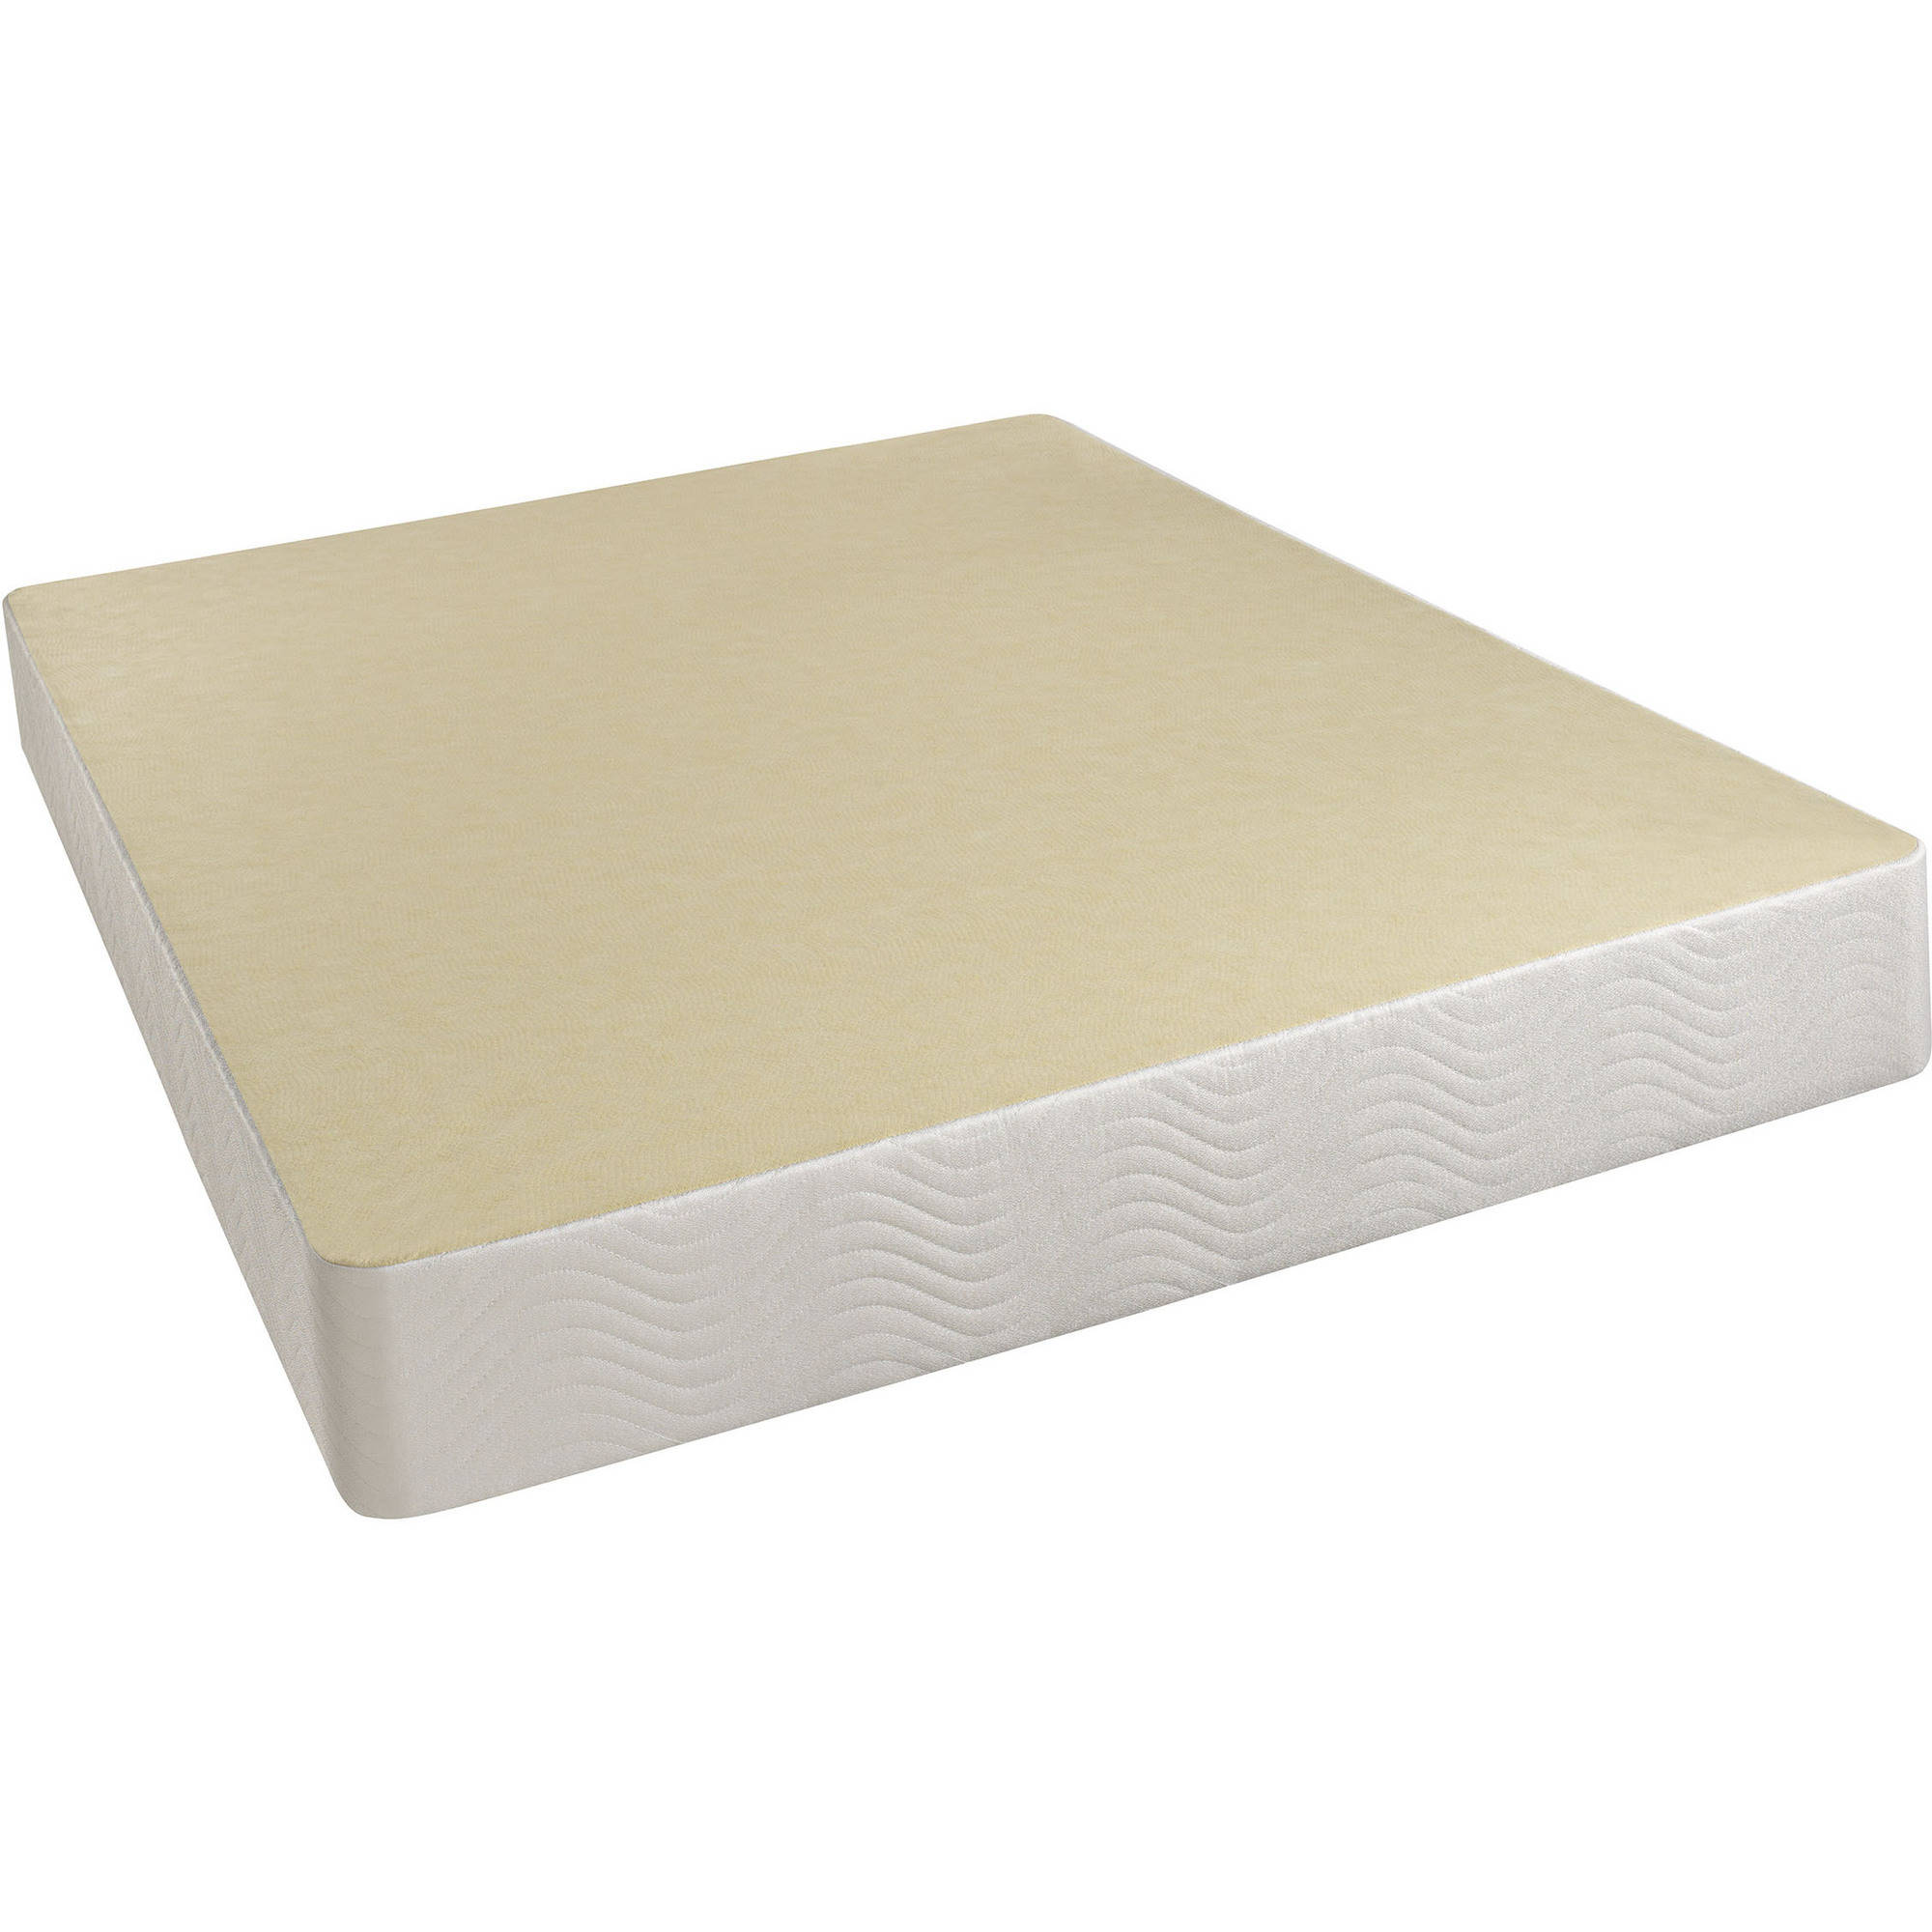 """Simmons Beautyrest 8.5"""" Triton Foundation by Simmons"""